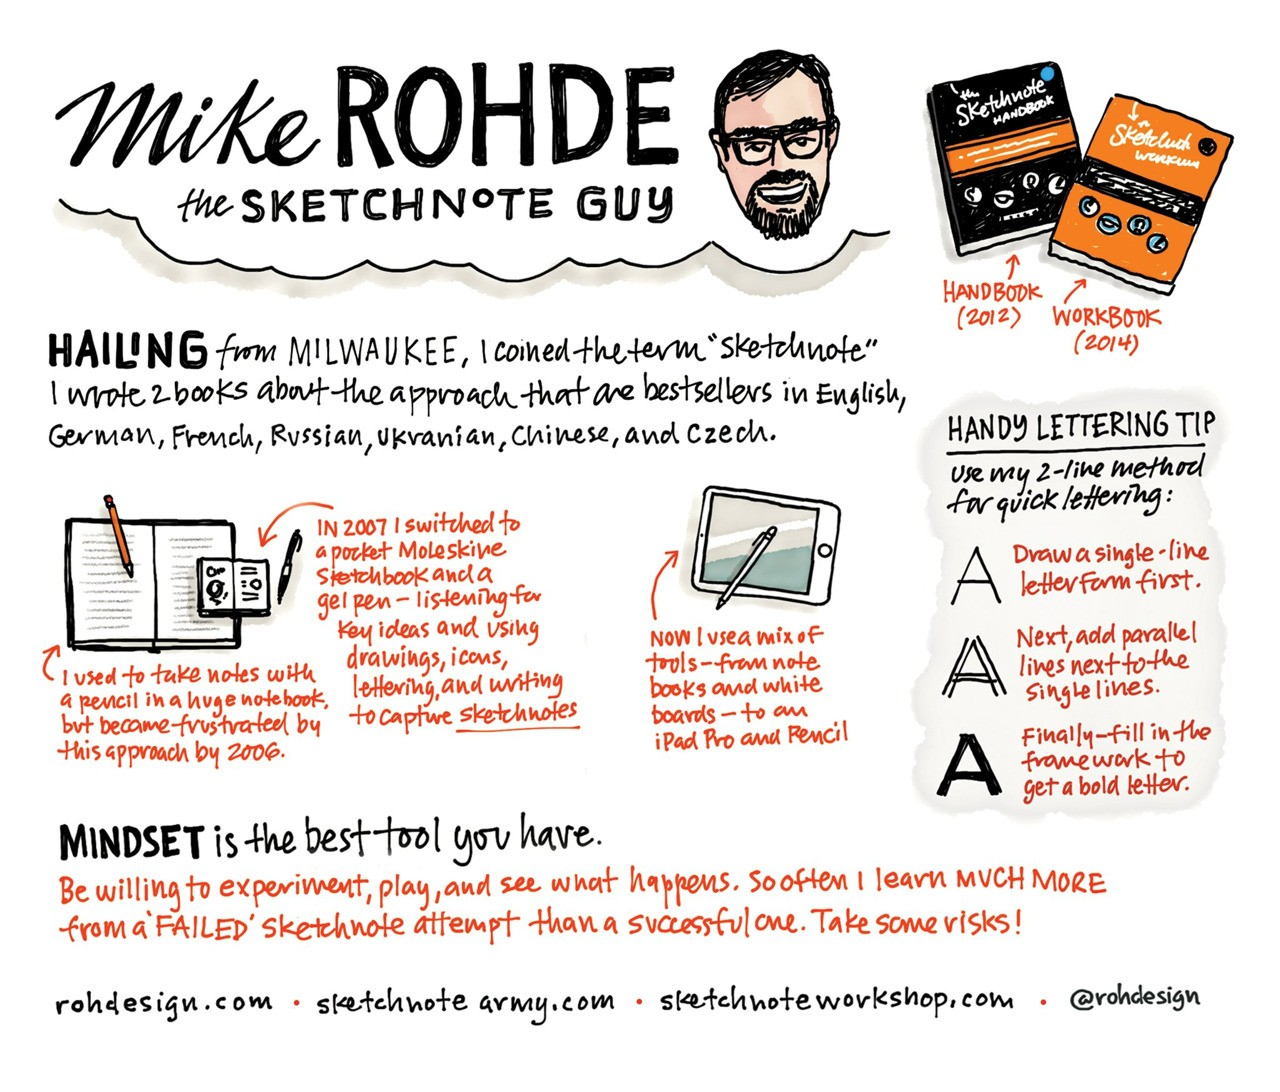 Sketch note selfie from Mike Rohde